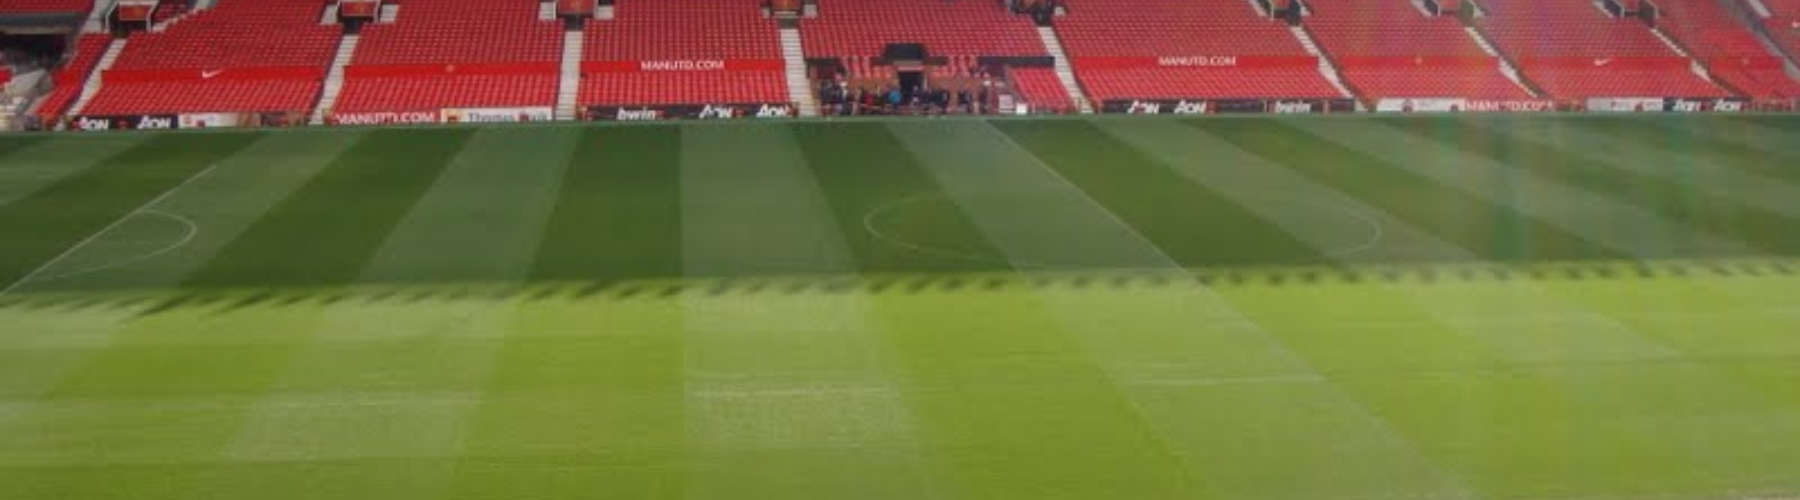 Old Trafford home of Manchester United FC